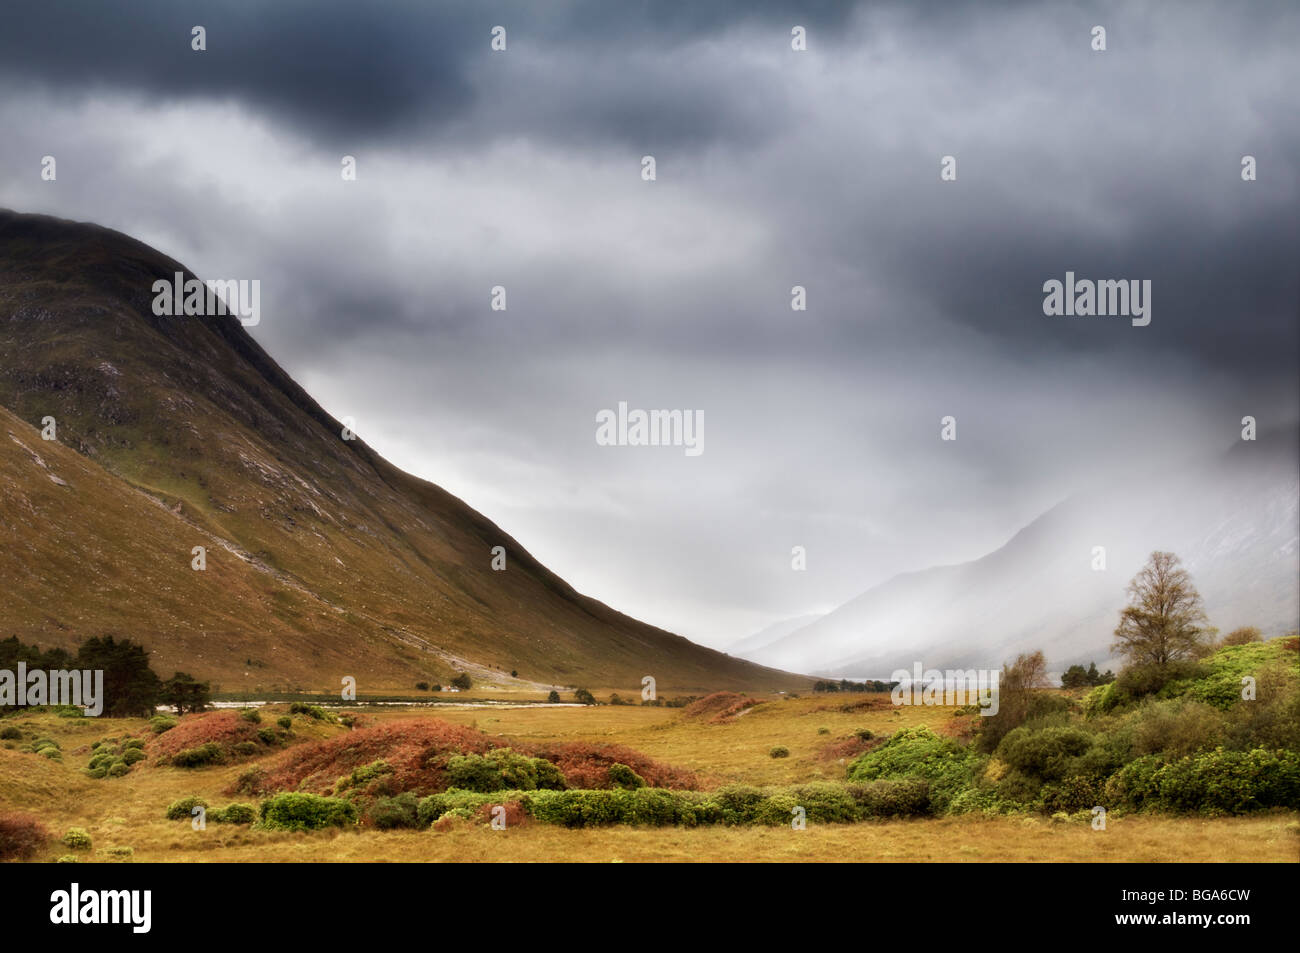 Glen Etive, Glencoe region in Scotland with mist and rain coming in, taken in early autumn - Stock Image